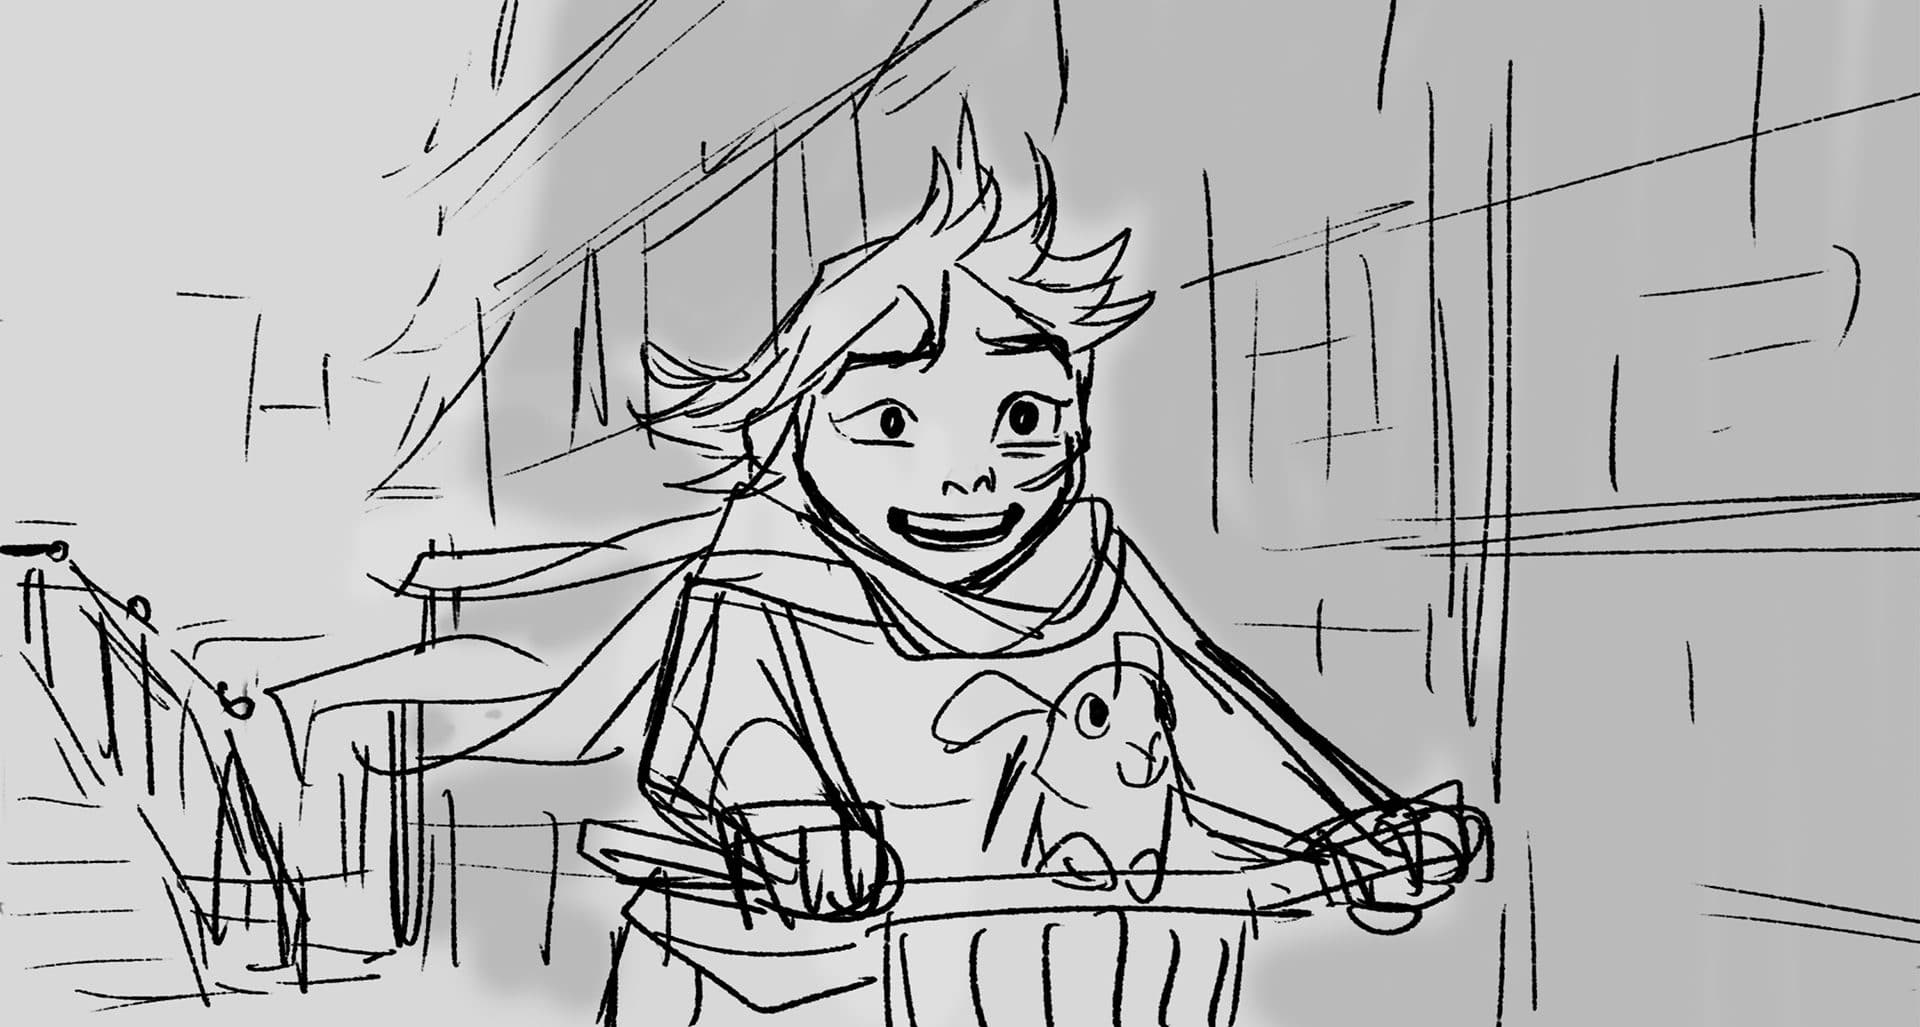 storyboard image of girl riding a bike